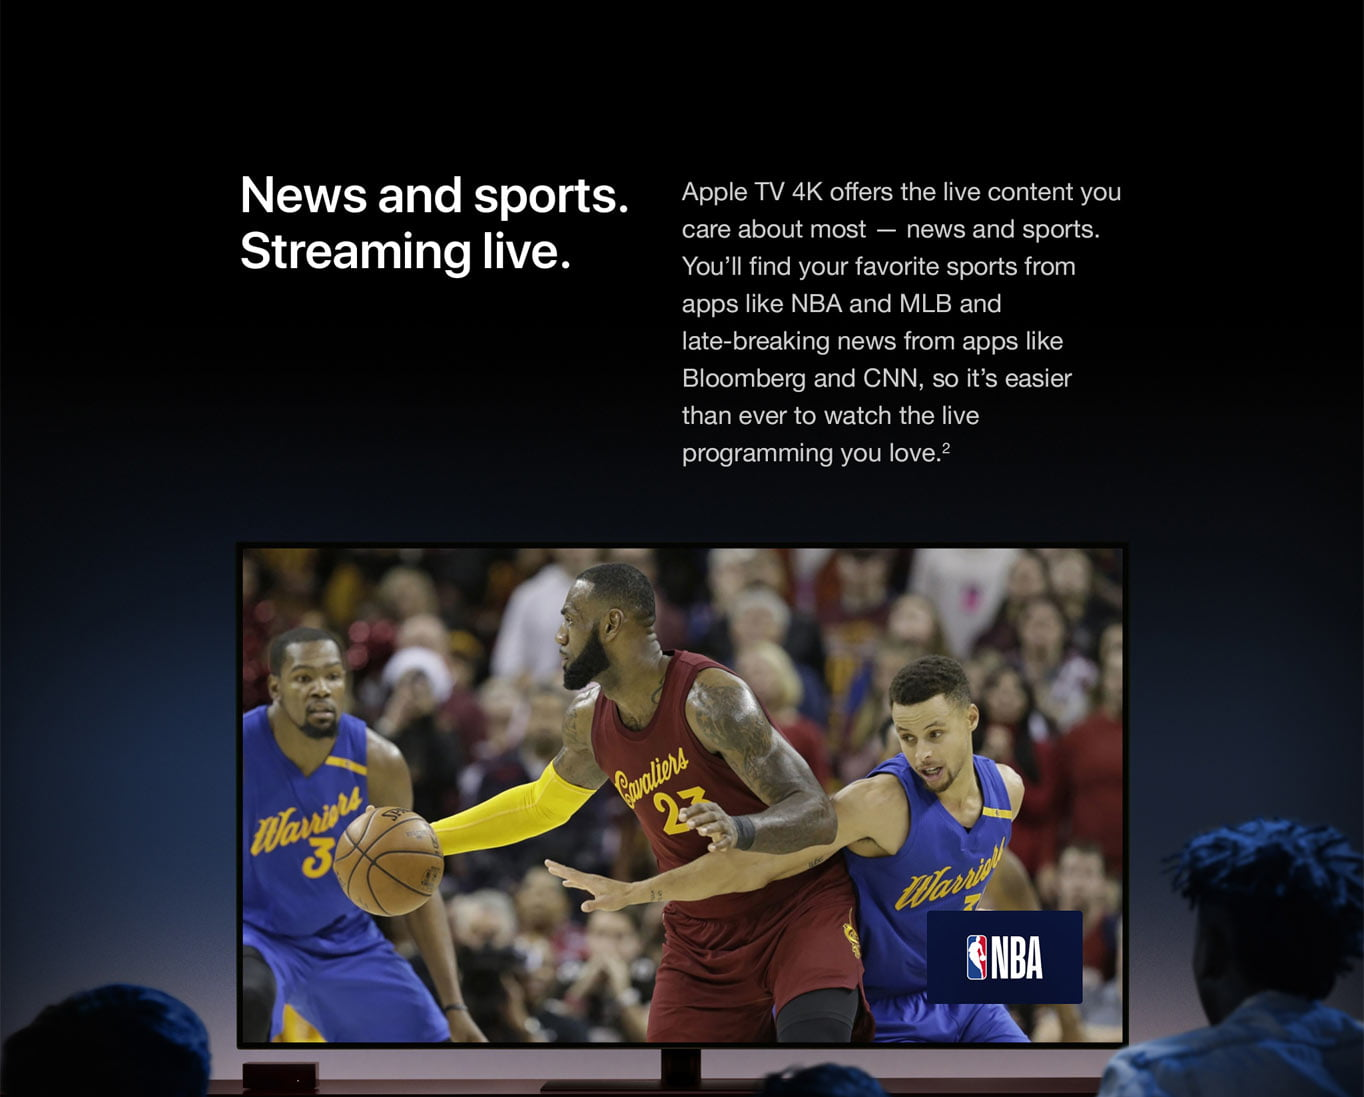 News and sports streaming live